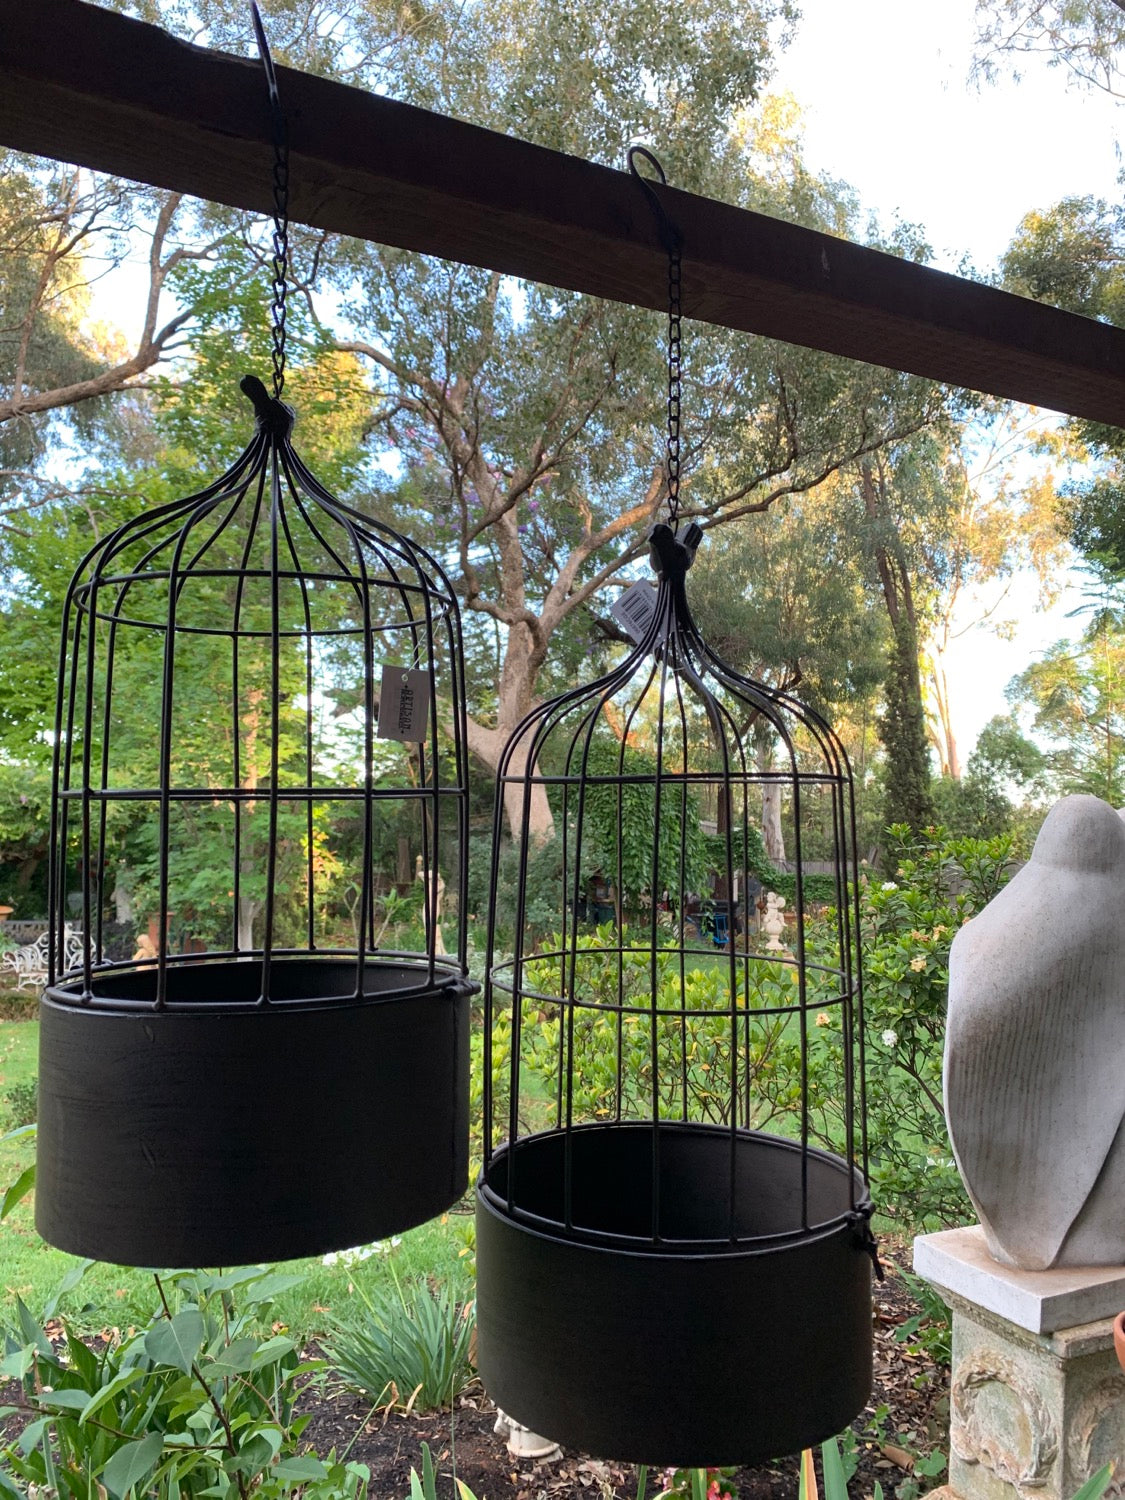 Set 2 Nested Round Bird Cages